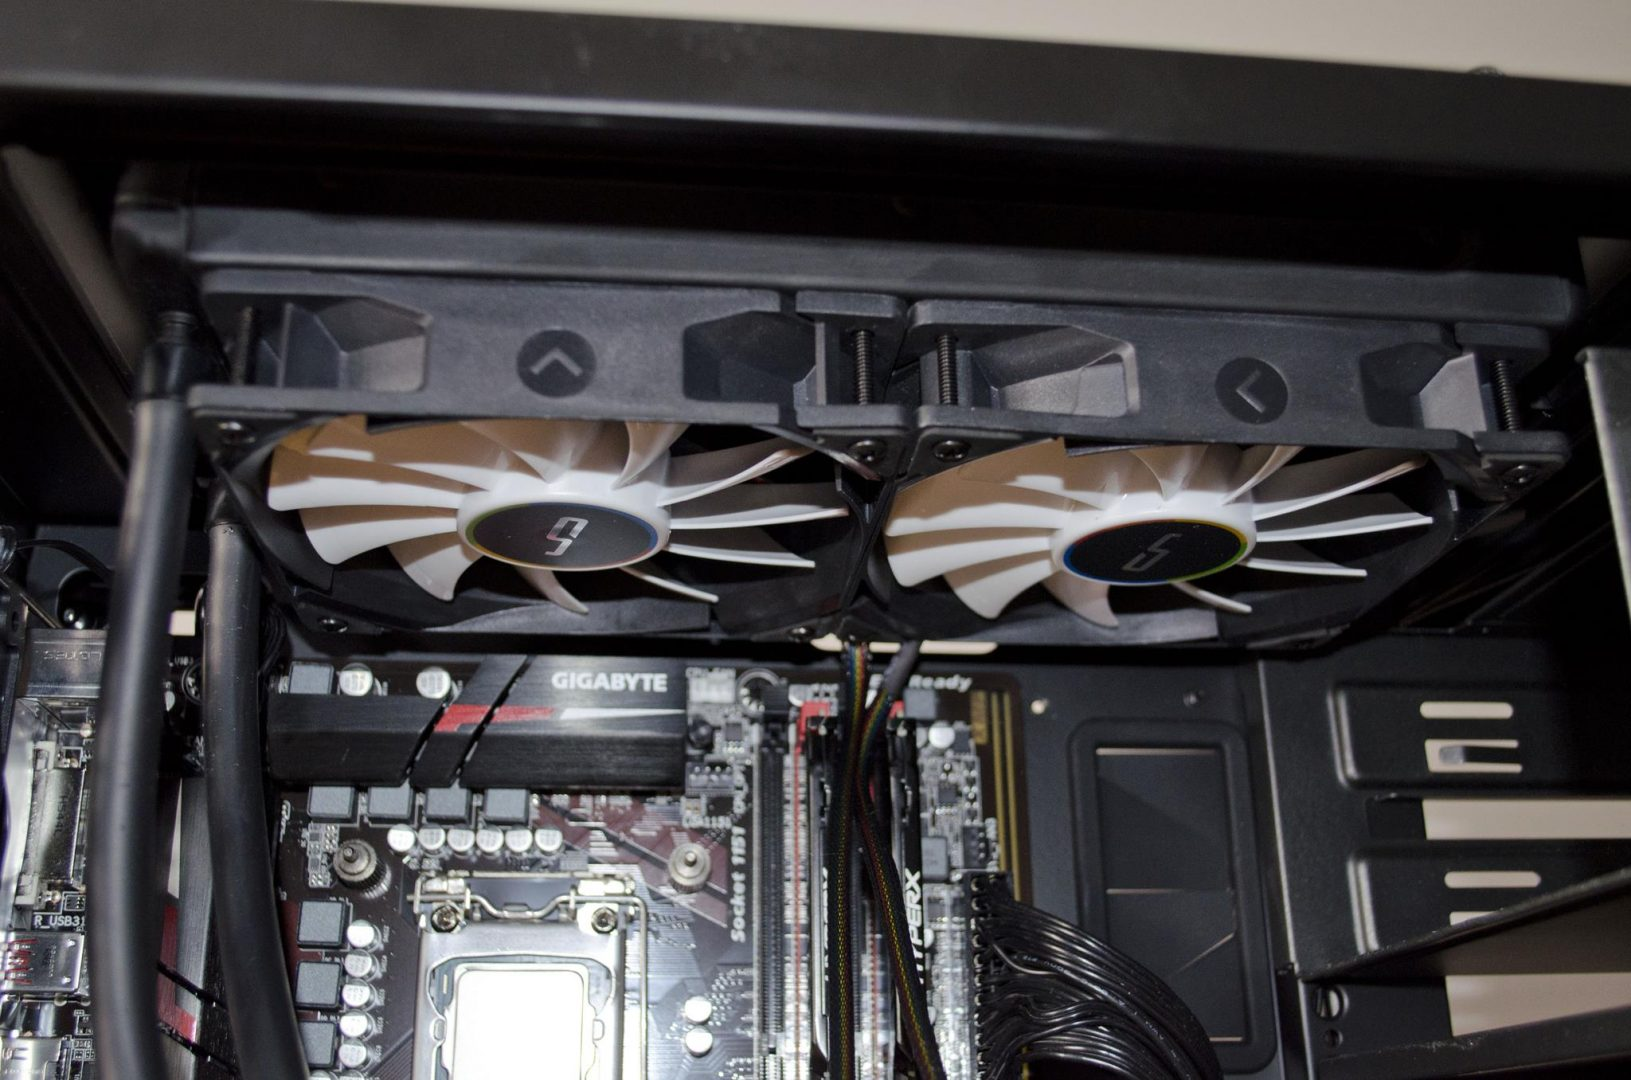 Cryorig a40 2400mm ultimate aio cpu cooler review_13